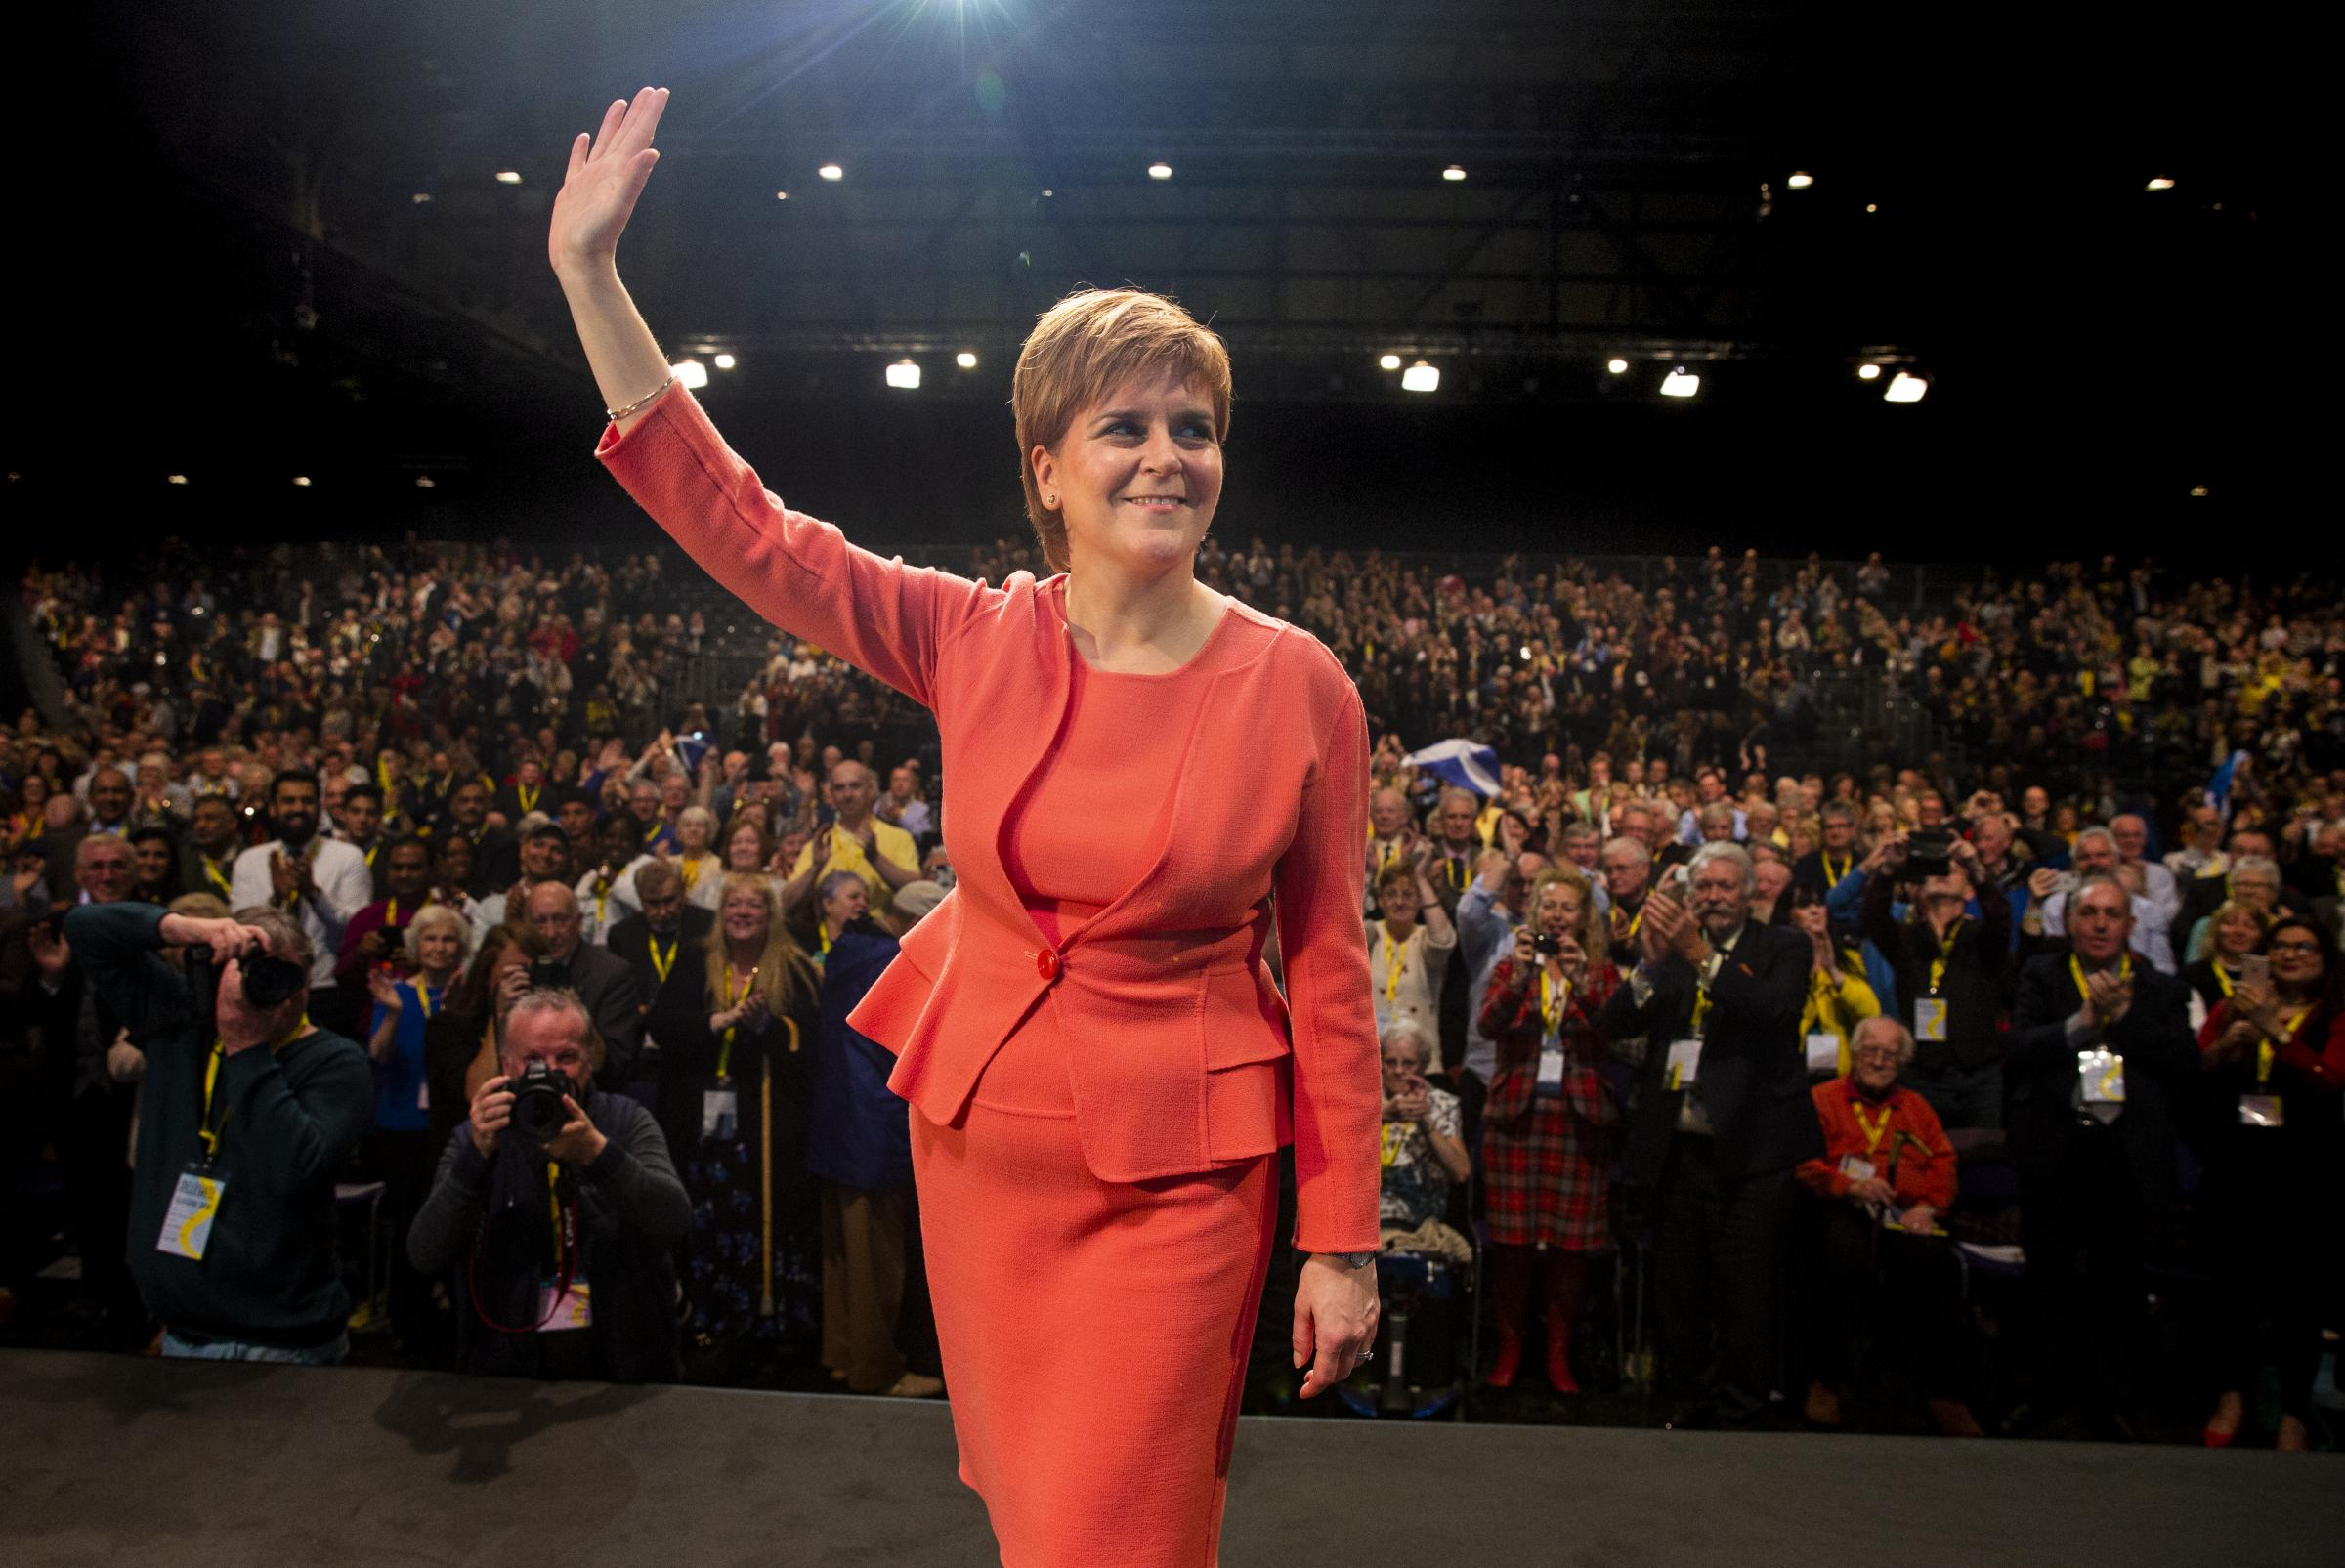 SNP 'would gain four seats in snap General Election', poll finds